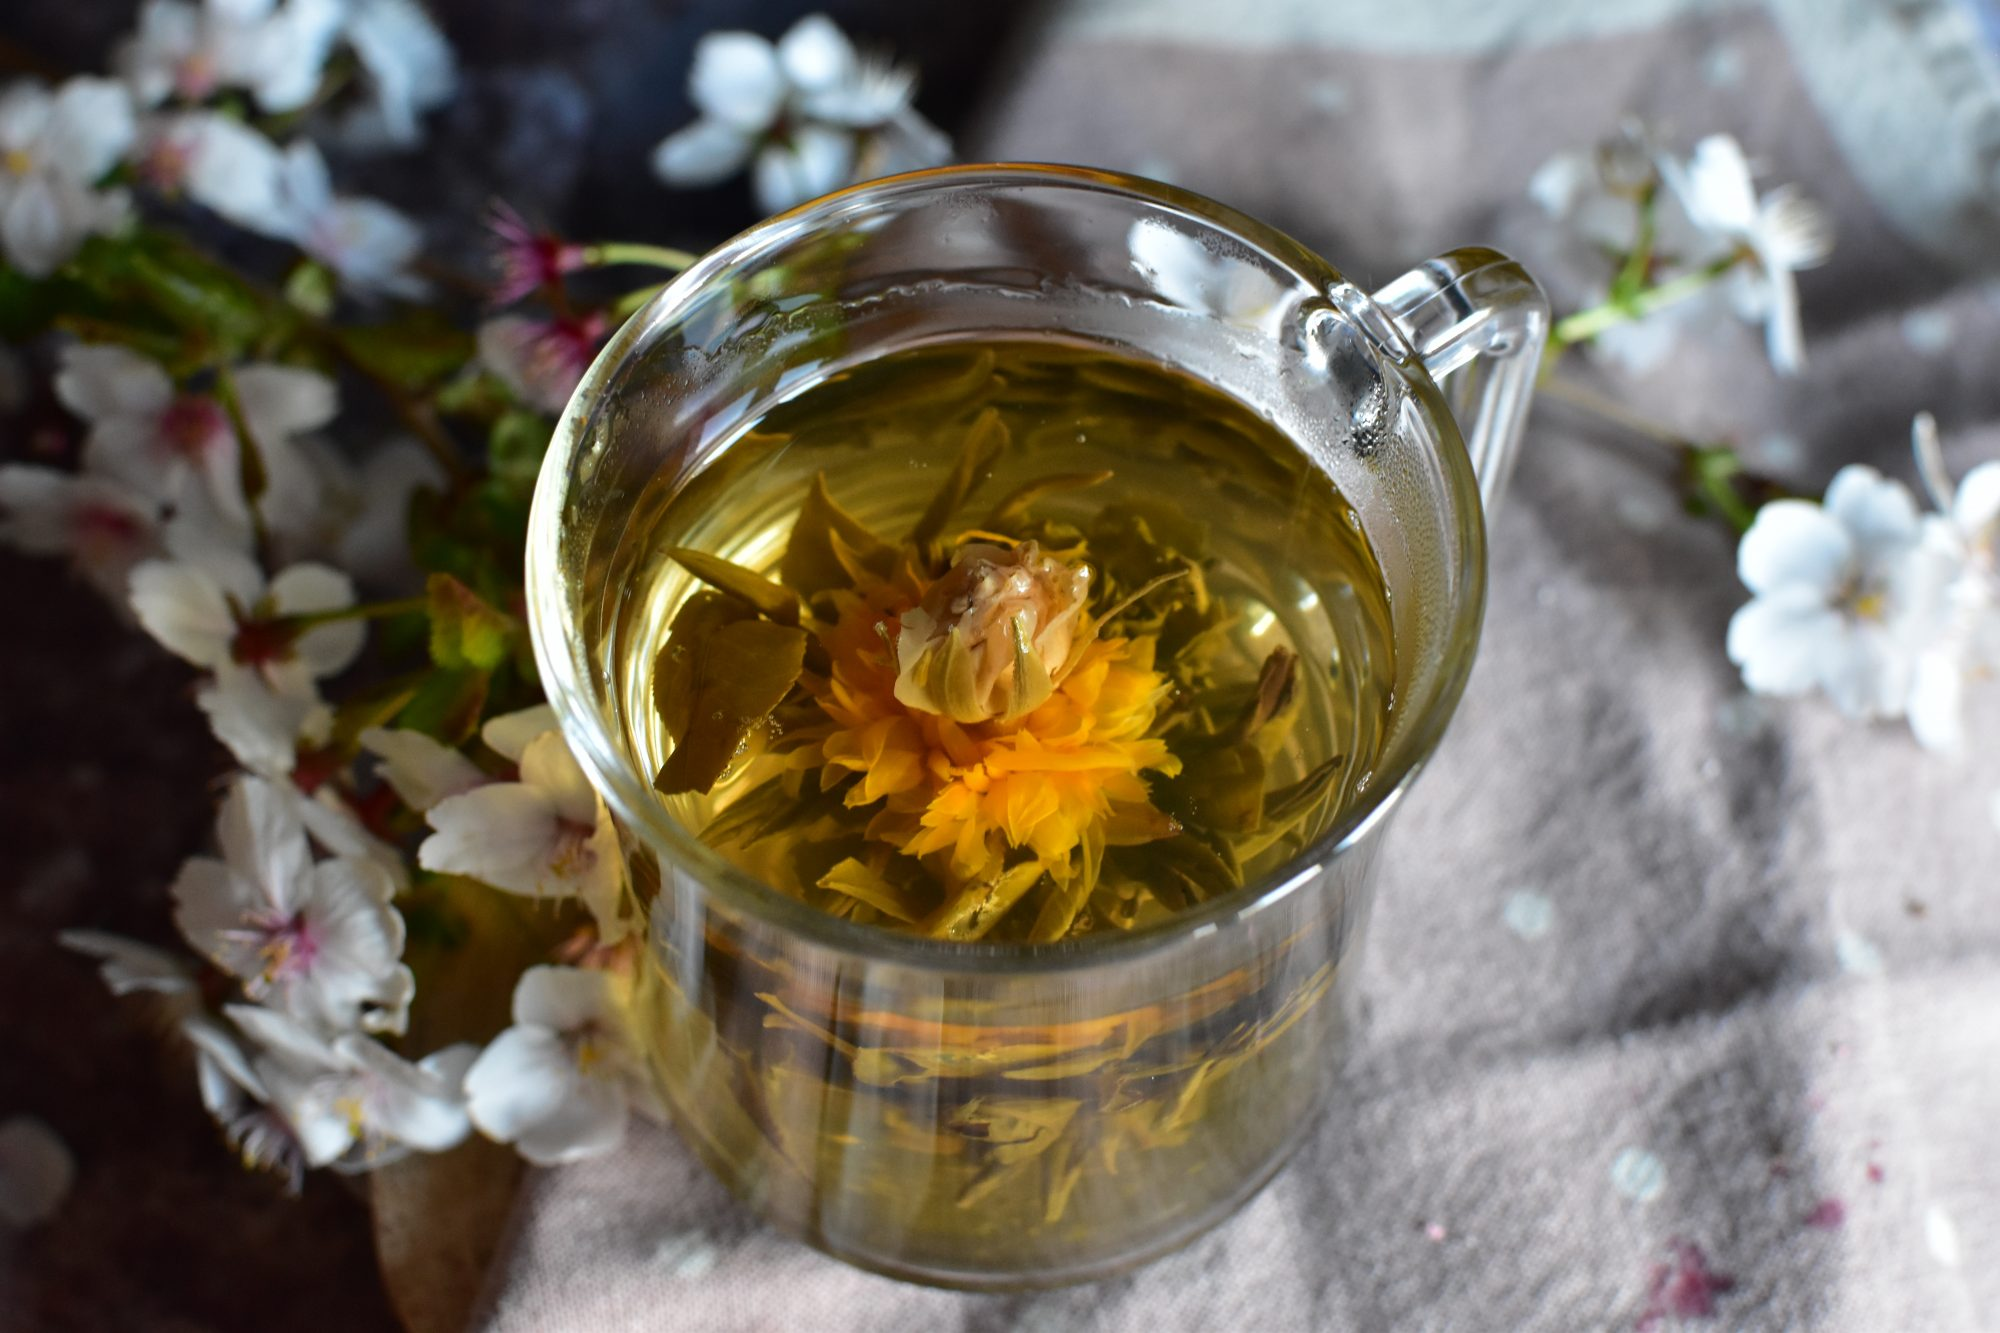 Flowering tea or blooming tea consists of a bundle of dried tea leaves wrapped around one or more dried flowers. These are made by binding tea leaves and flowers together into a bulb, then setting them to dry. When steeped, the bundle expands and unfurls in a process that emulates a blooming flower, and the flowers inside emerge as the centerpiece